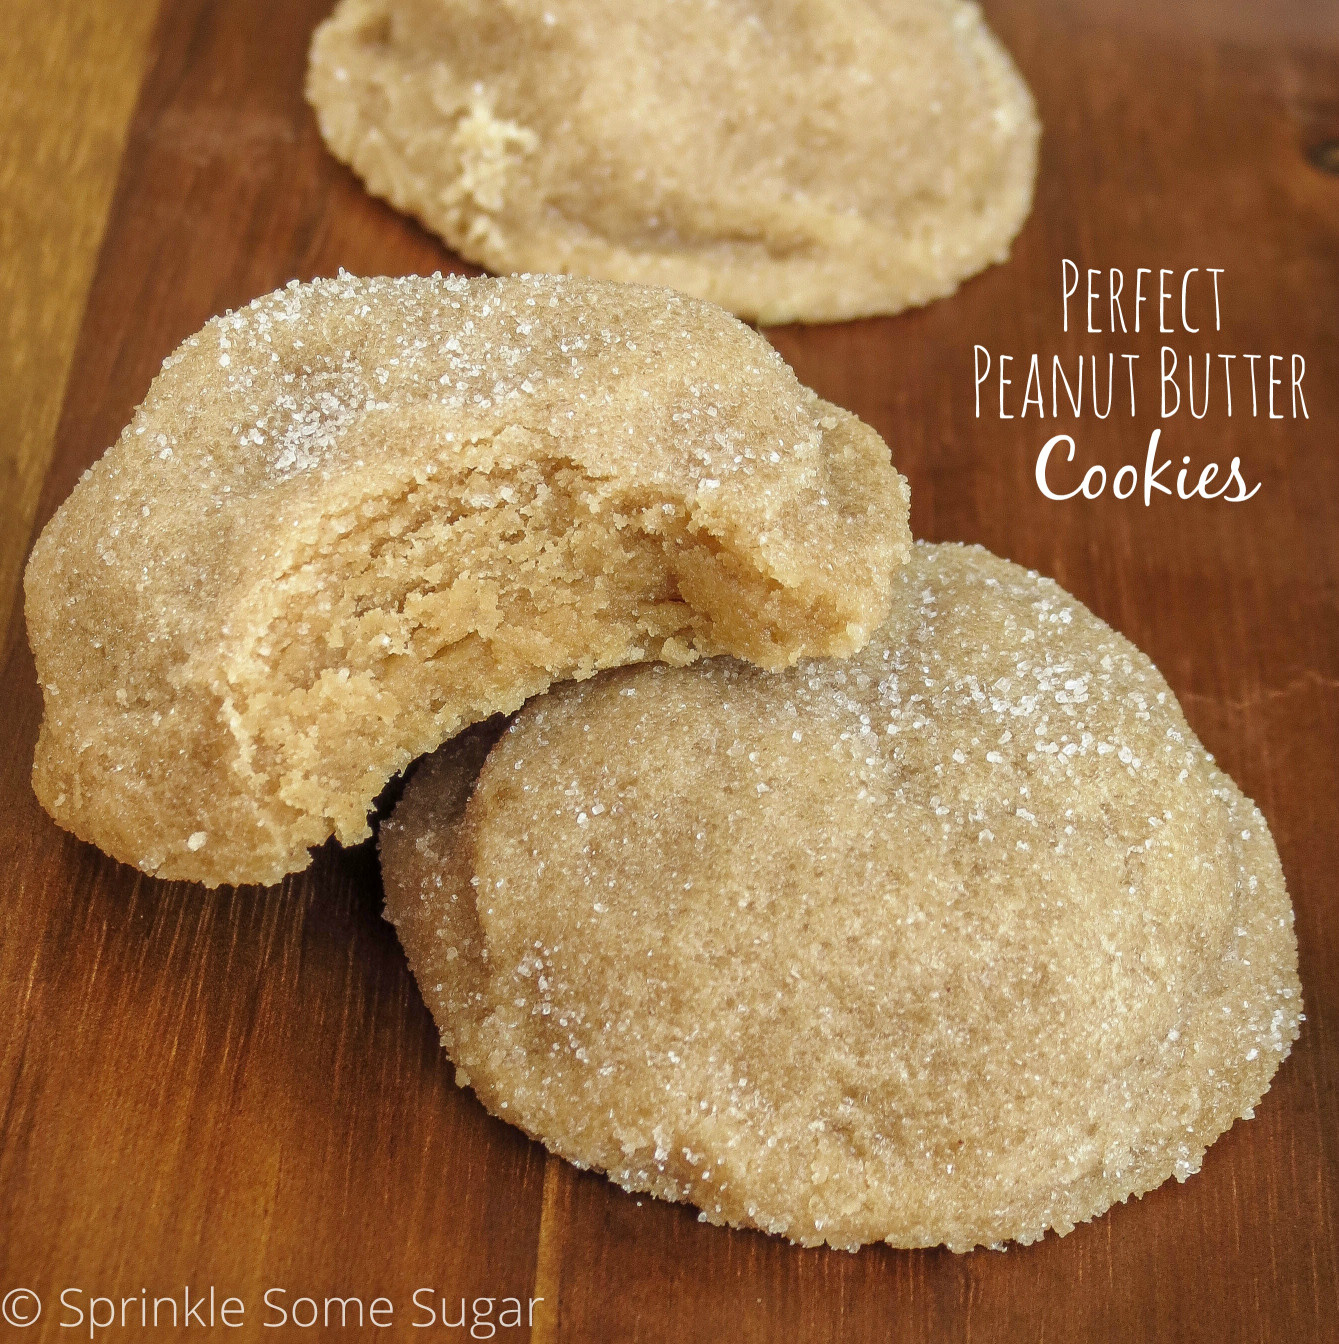 Peanut Butter Cookies  Perfect Peanut Butter Cookies Sprinkle Some Sugar